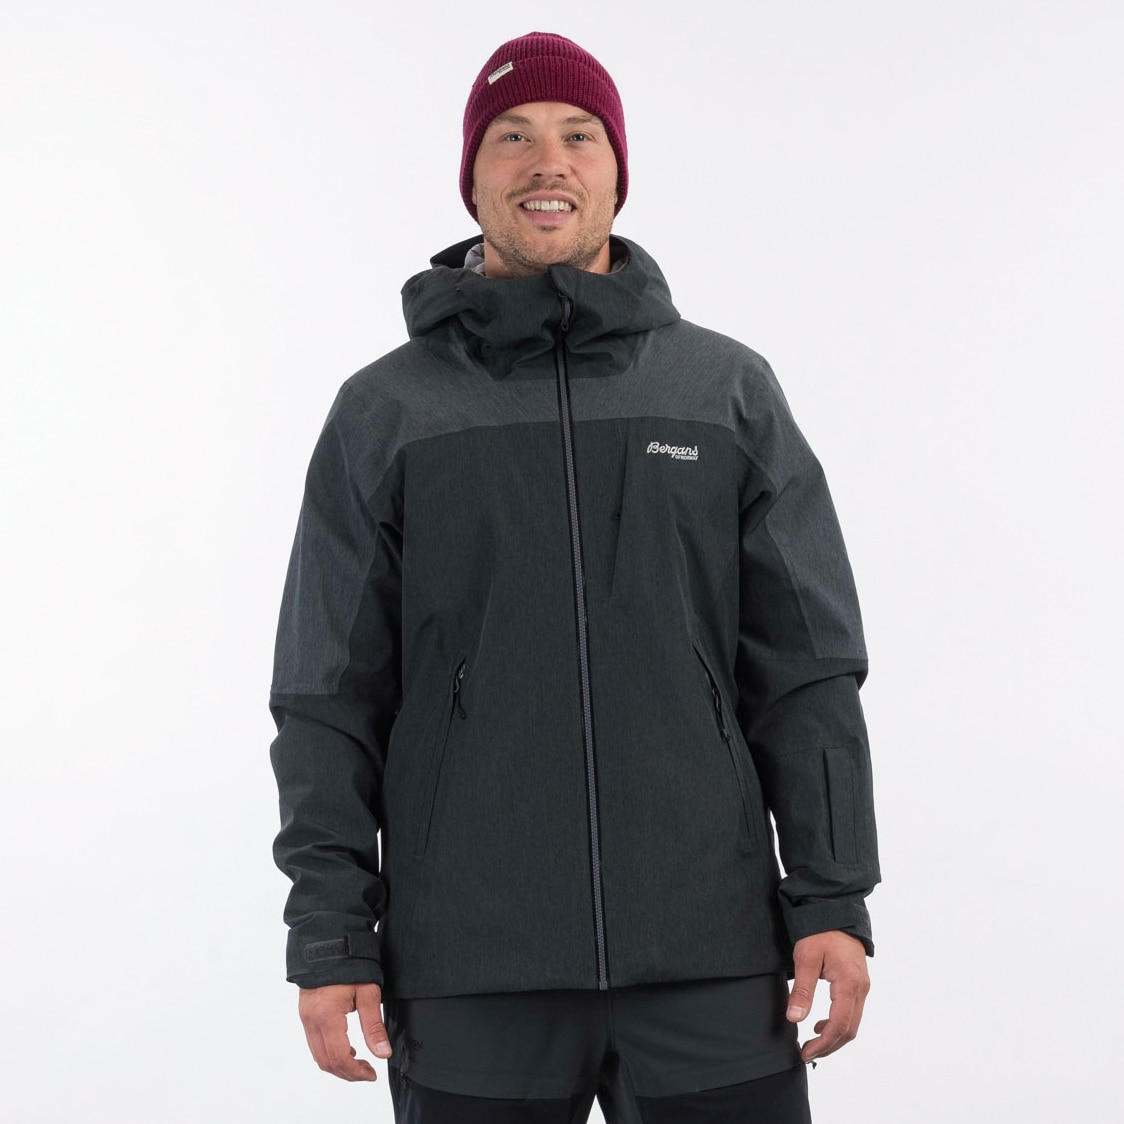 Hafjell Insulated Jacket